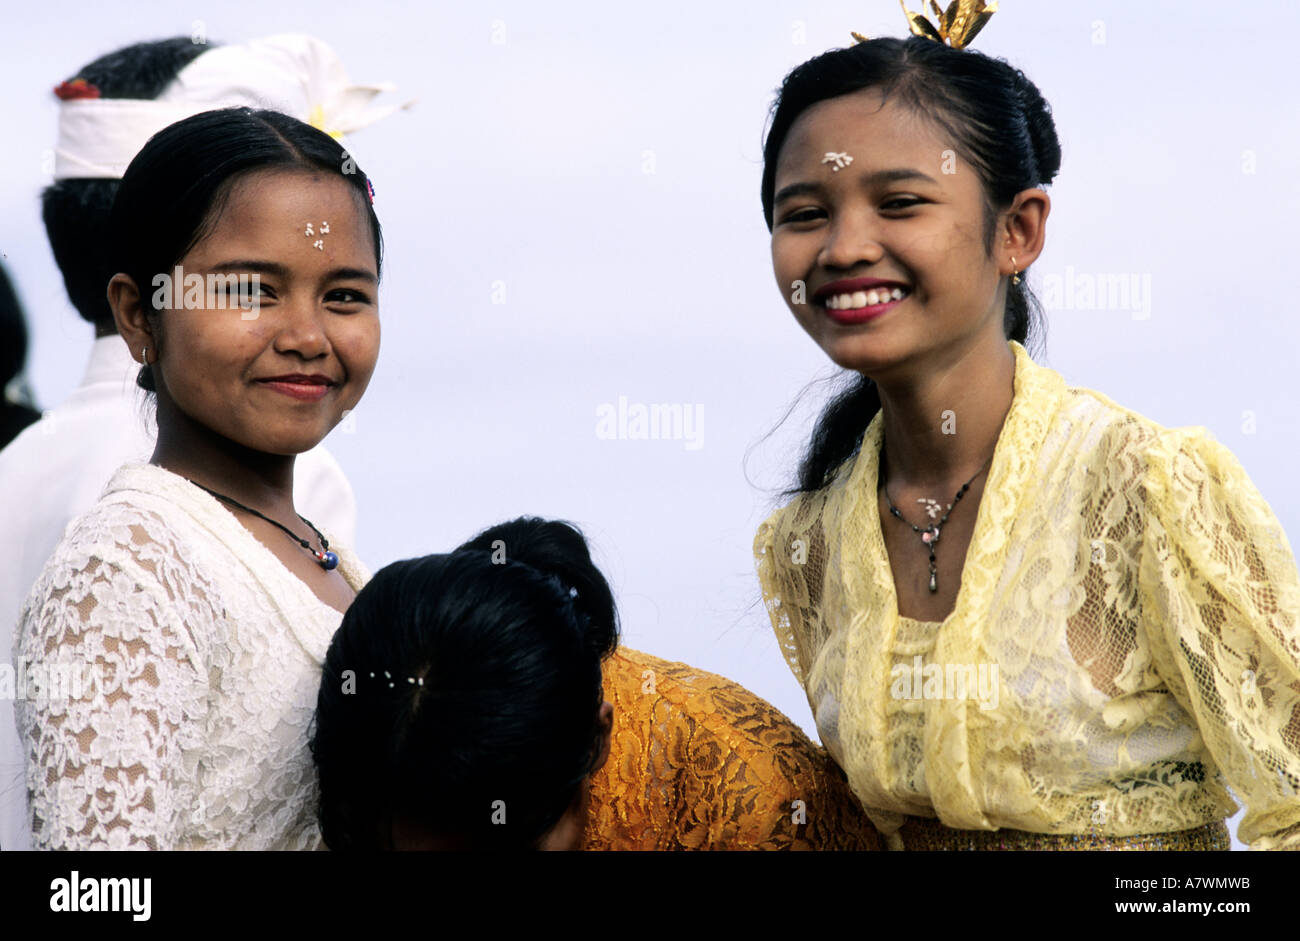 Indonesia, Bali, youg girls with their ceremonies dresses - Stock Image